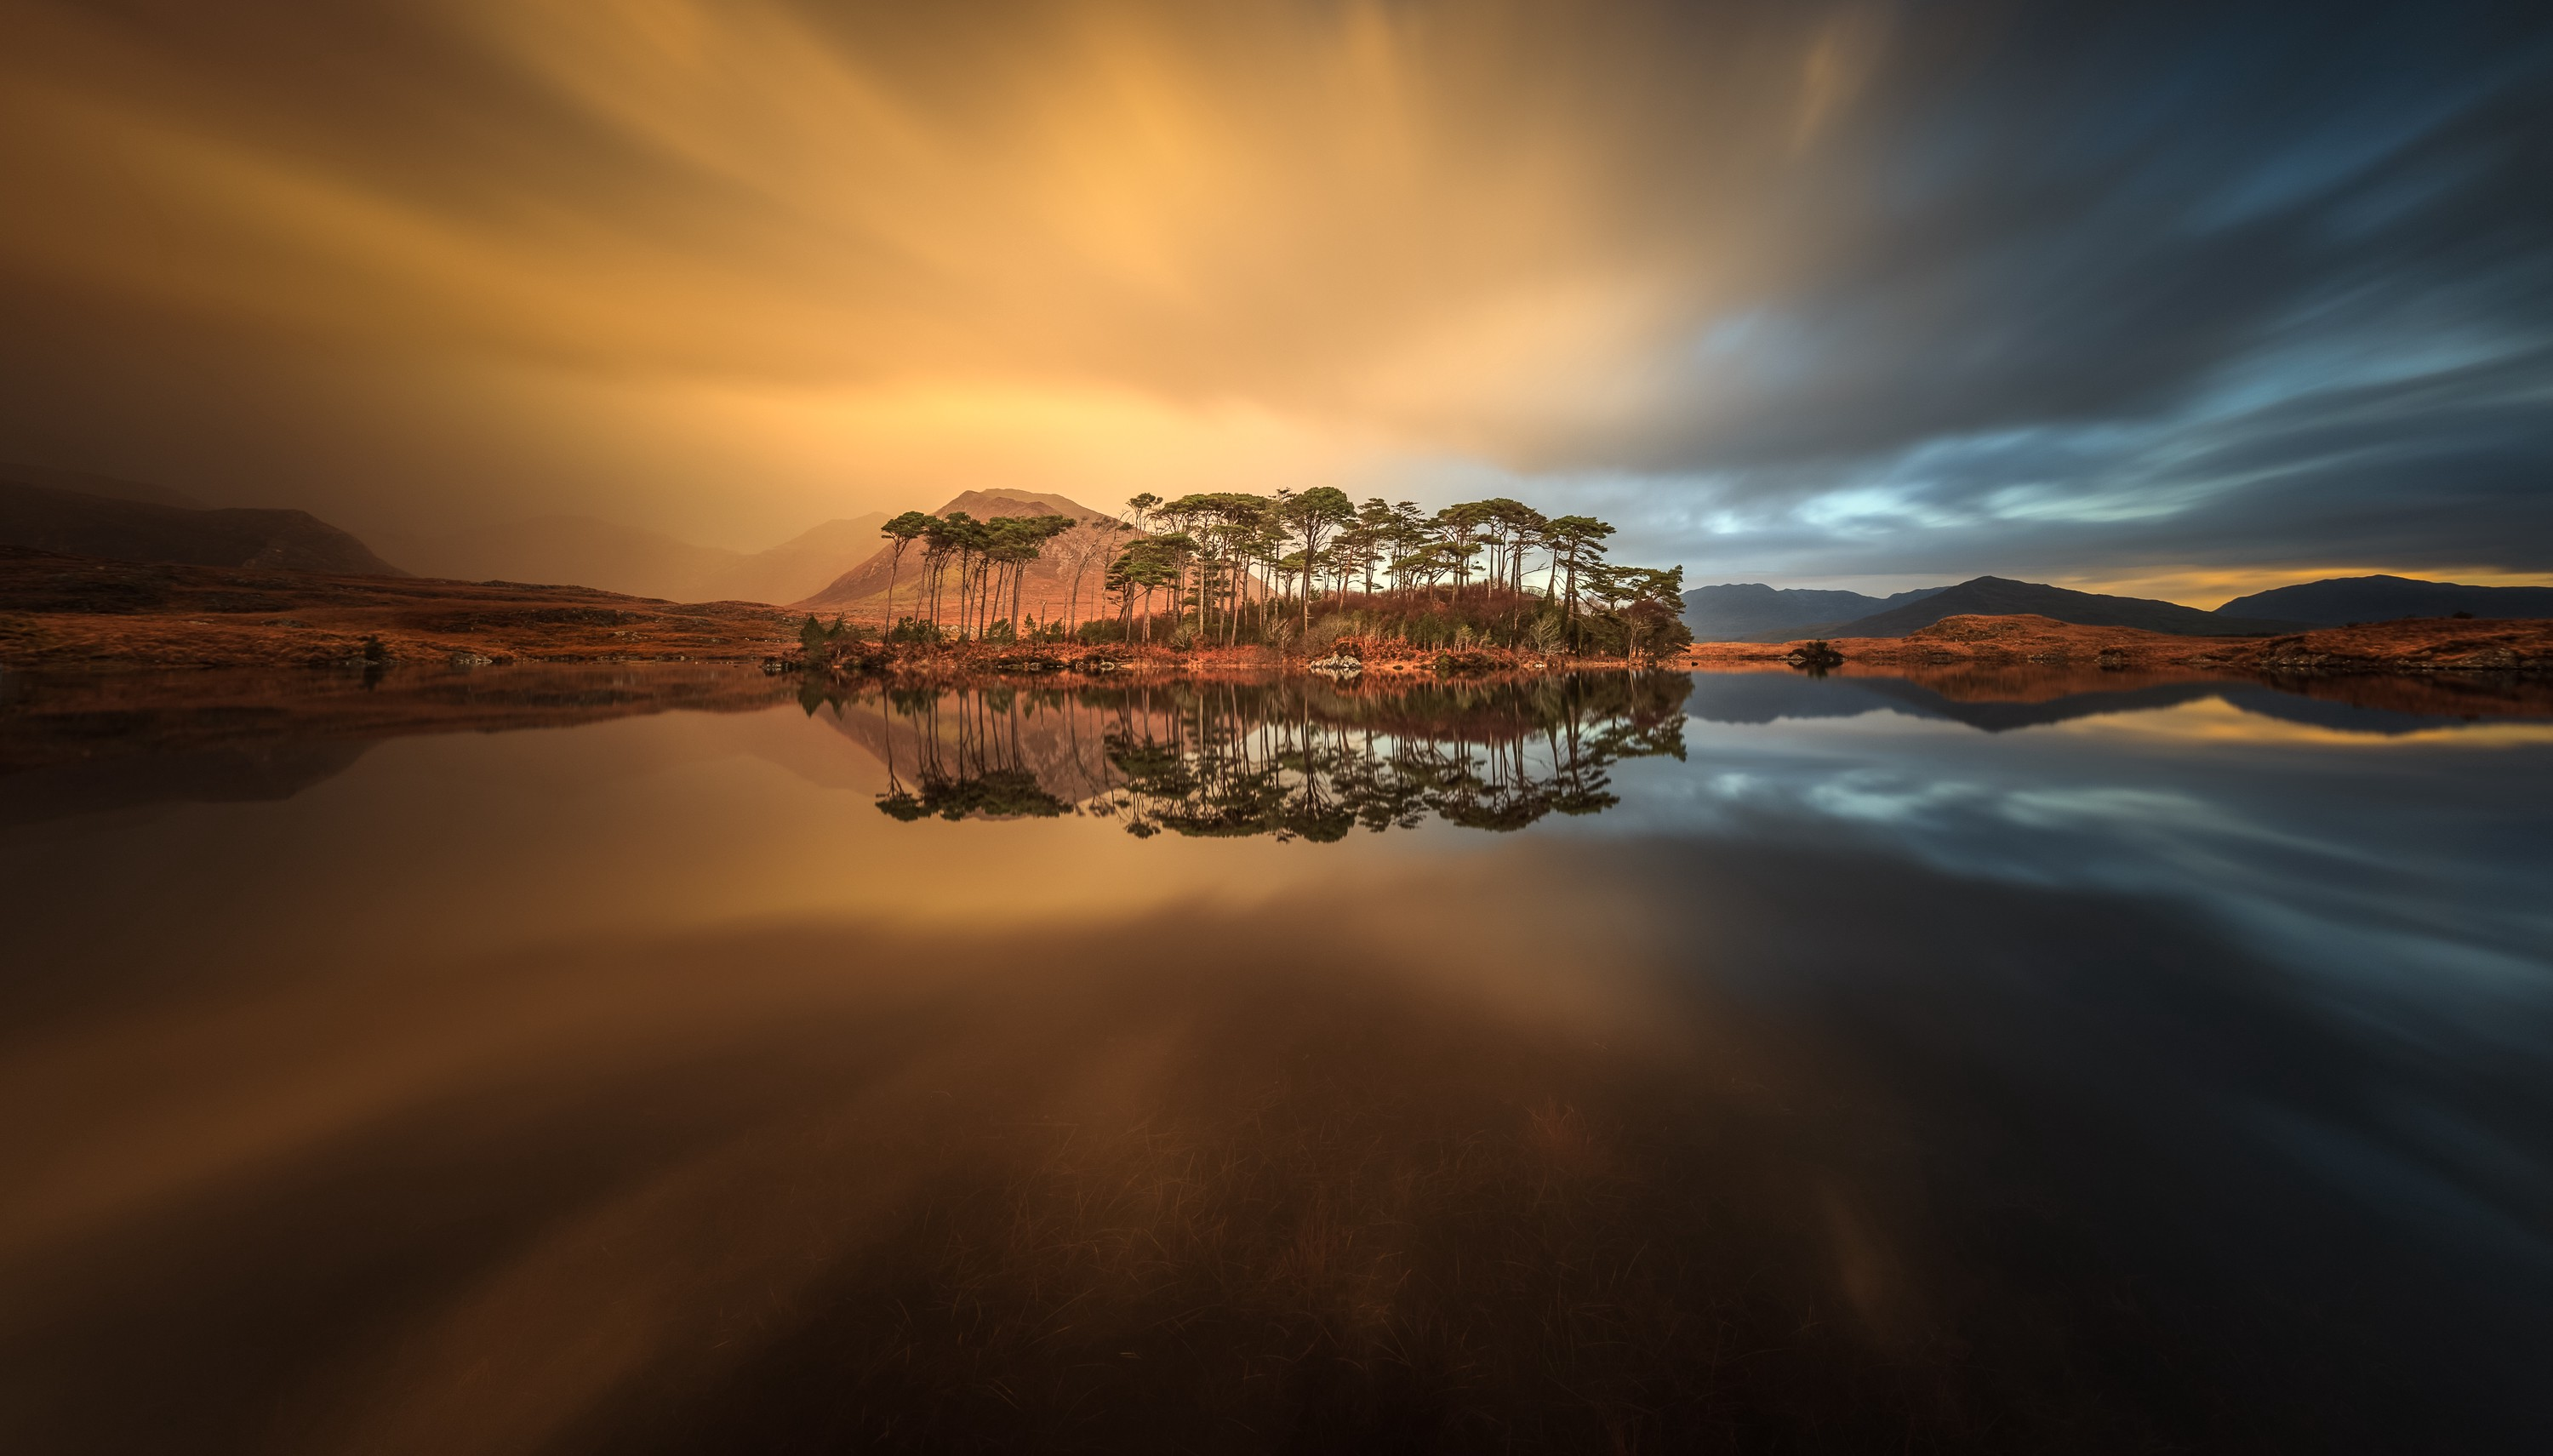 A serene island with tall, sparse trees is shot from eye level, with a still, mirror like body of water surrounding it